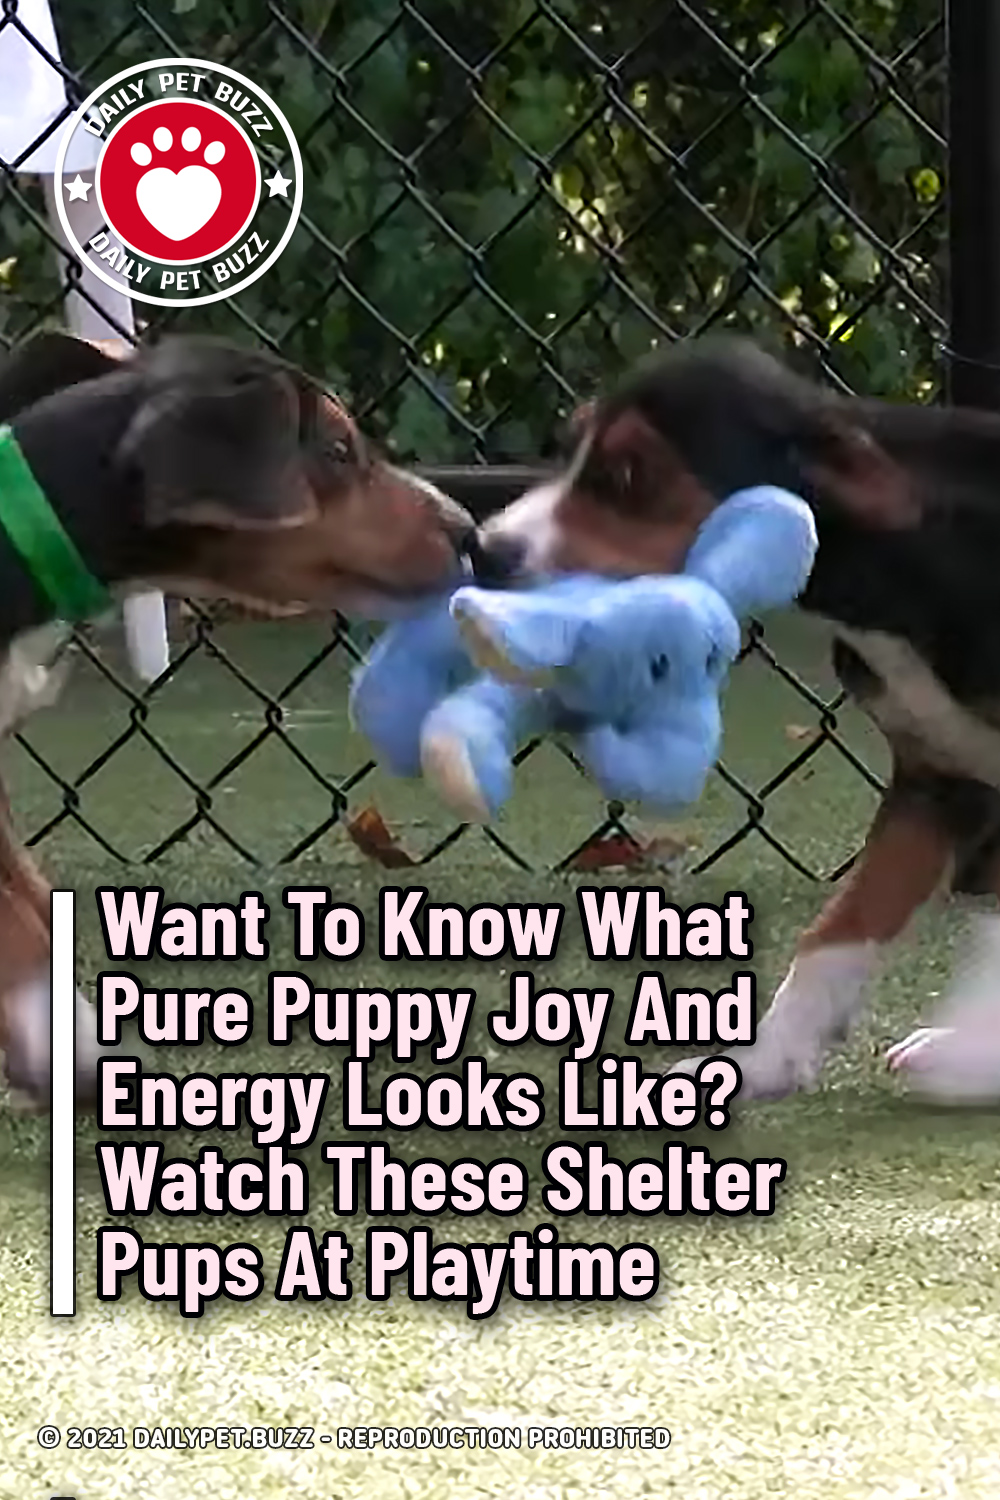 Want To Know What Pure Puppy Joy And Energy Looks Like? Watch These Shelter Pups At Playtime